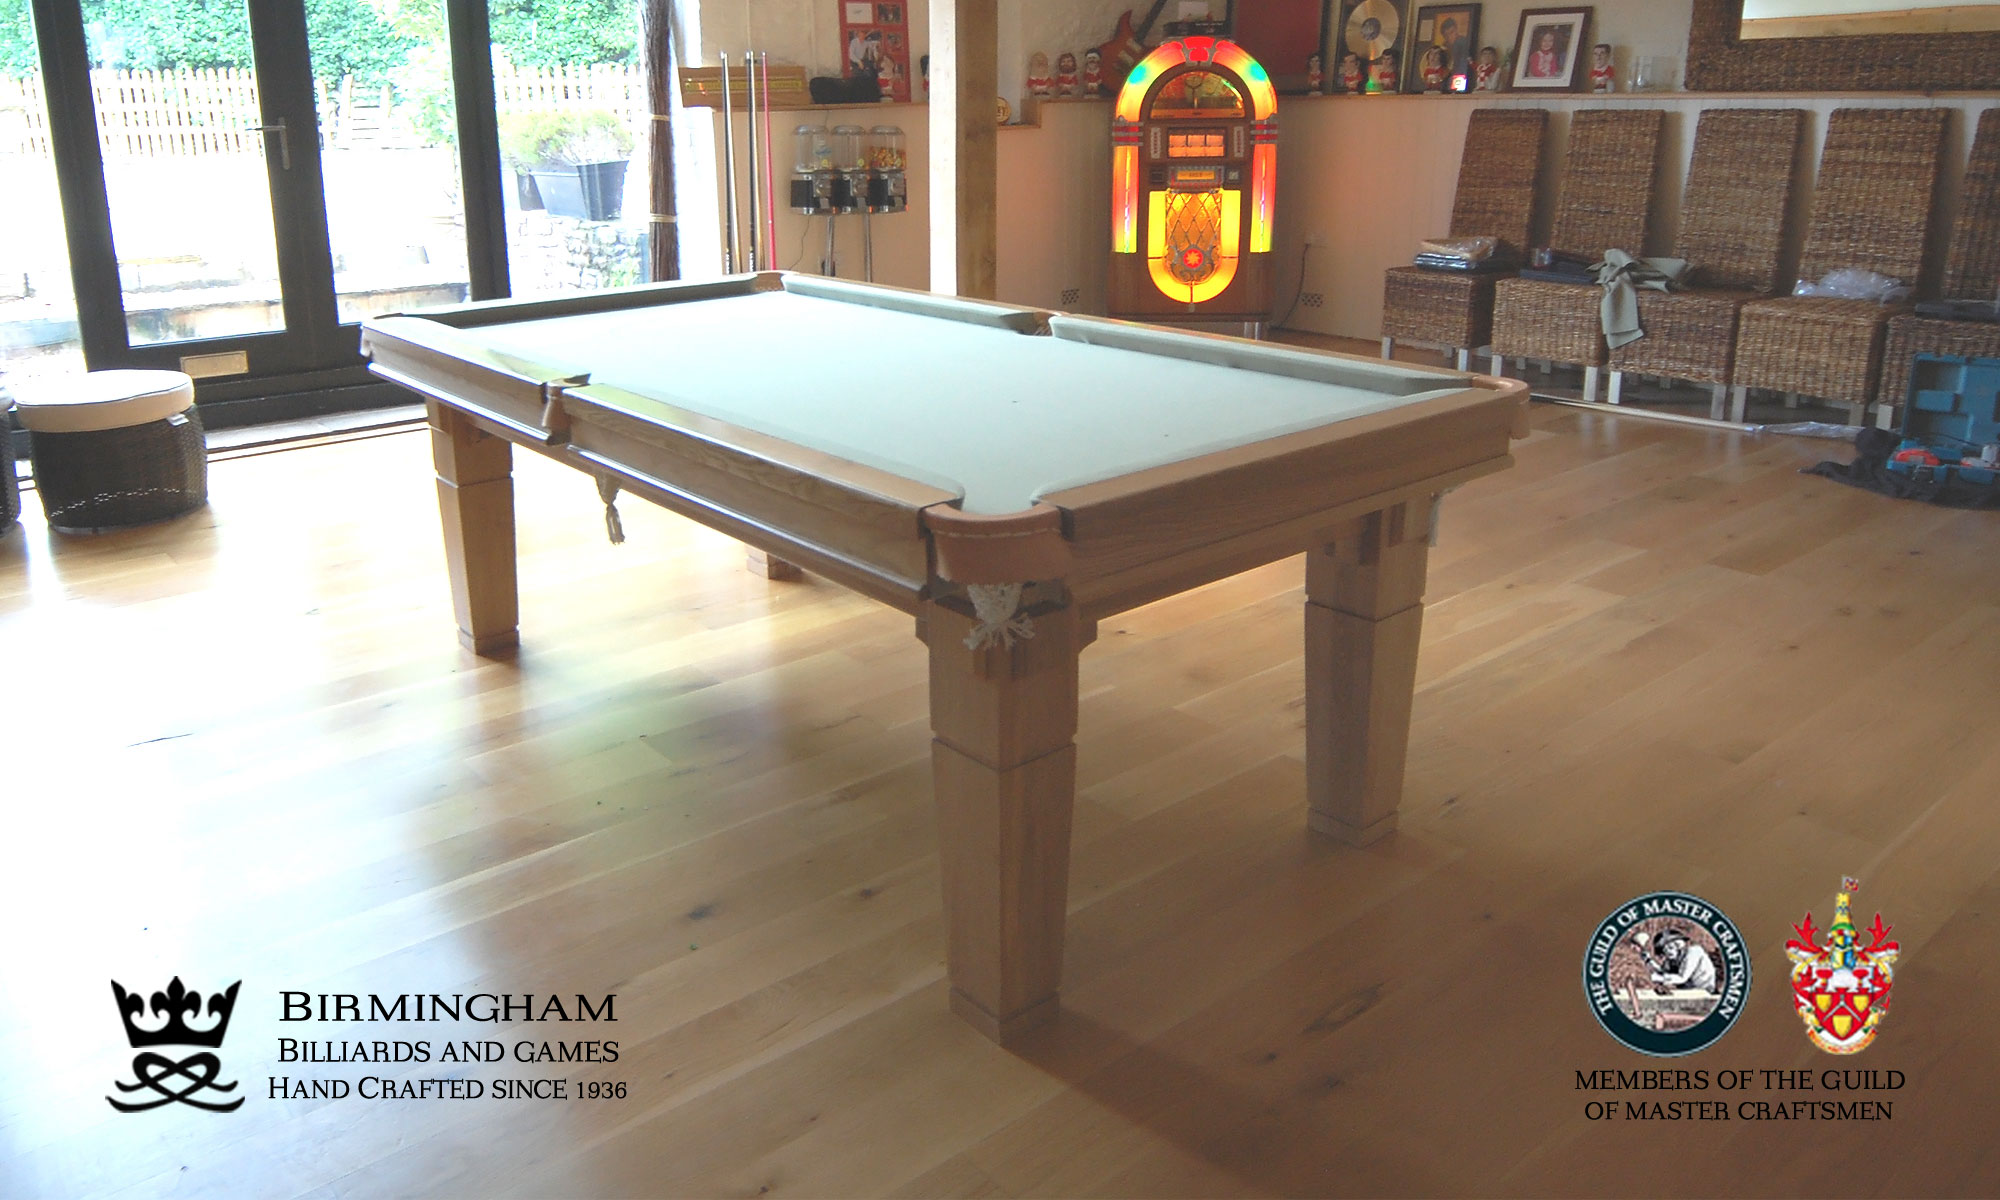 The Contemporary handmade pool table, light oak finish, sage baize, end view